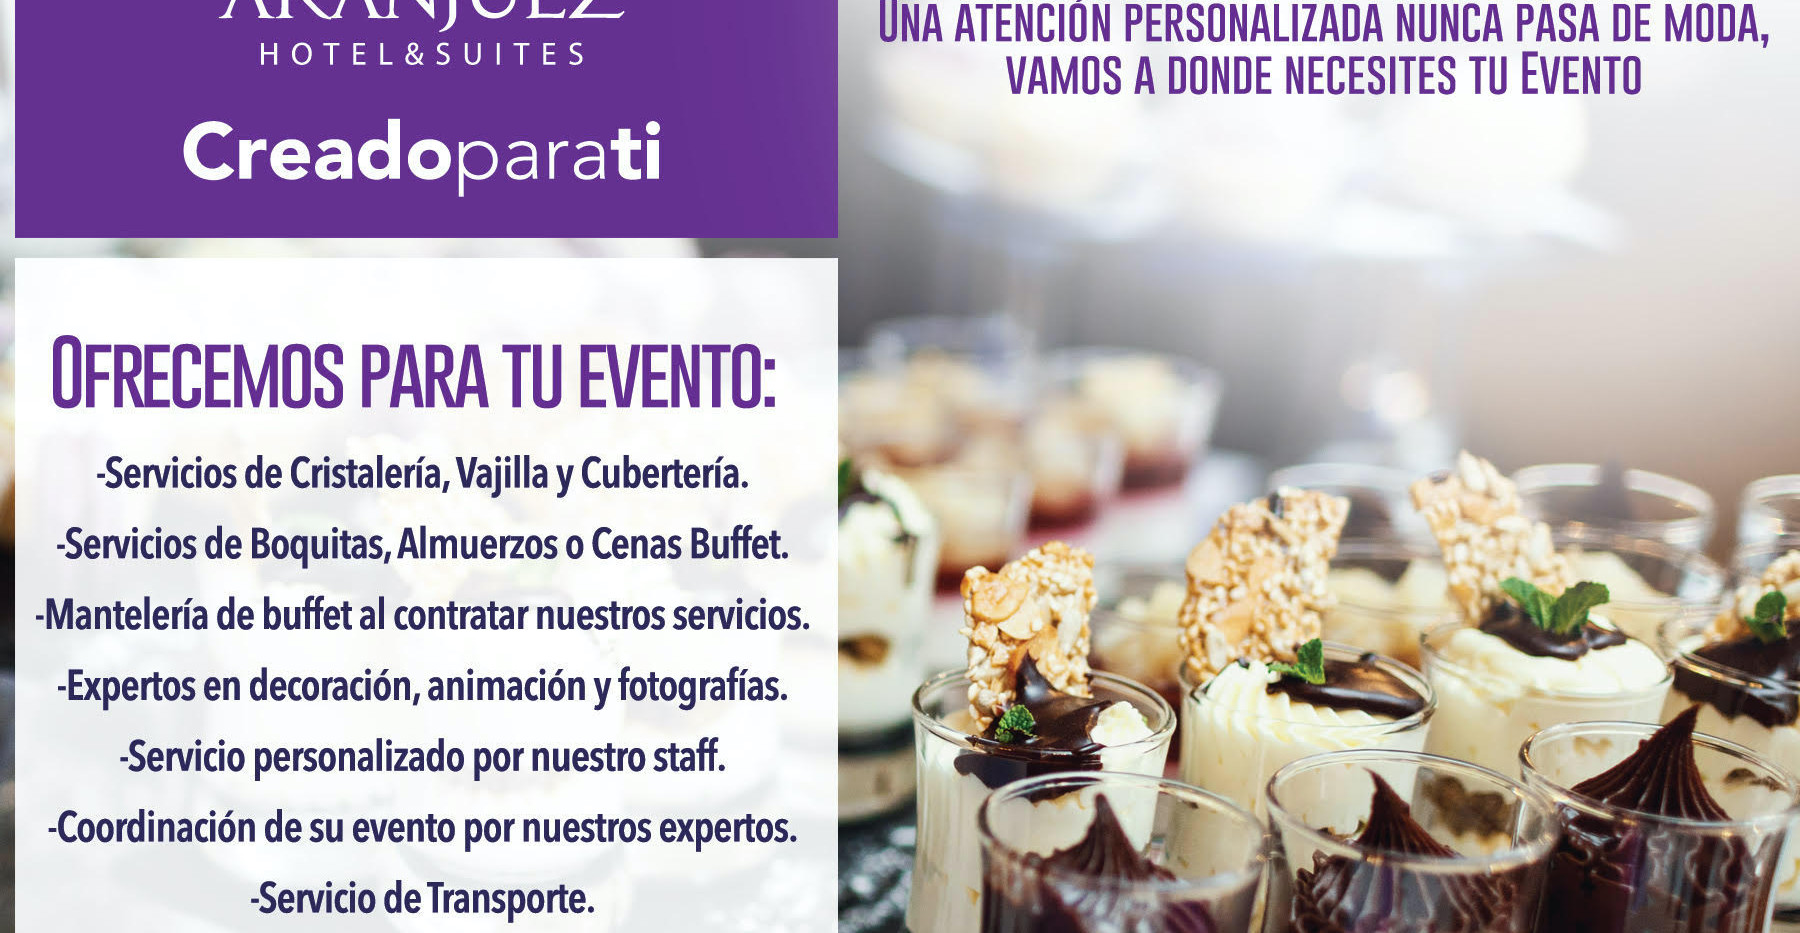 Catering and food service in David, Chiriquí